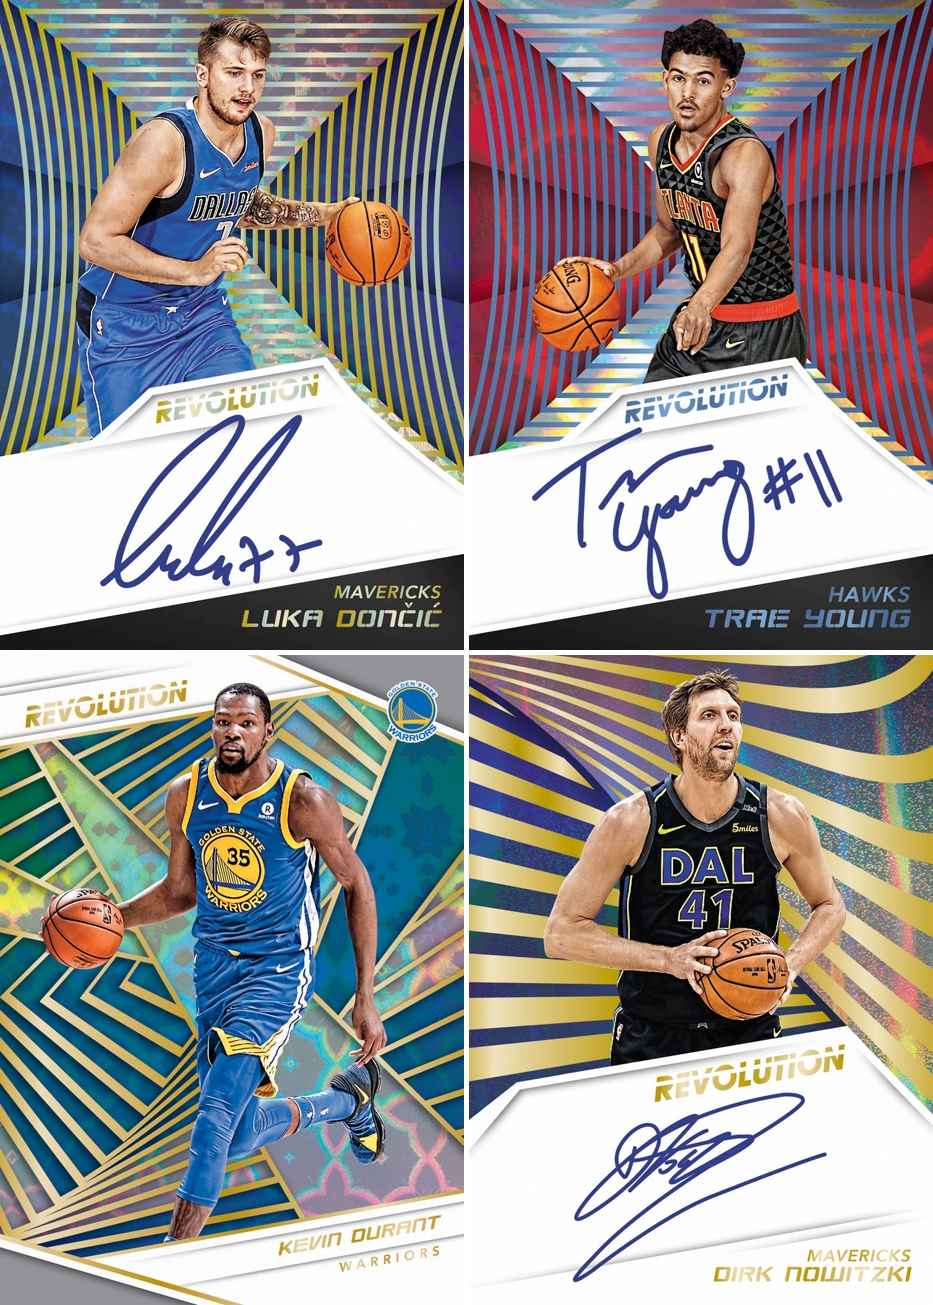 293f6bd6 All 18/19 Revolution Basketball Autographs are beautifully designed and ALL  on Card!